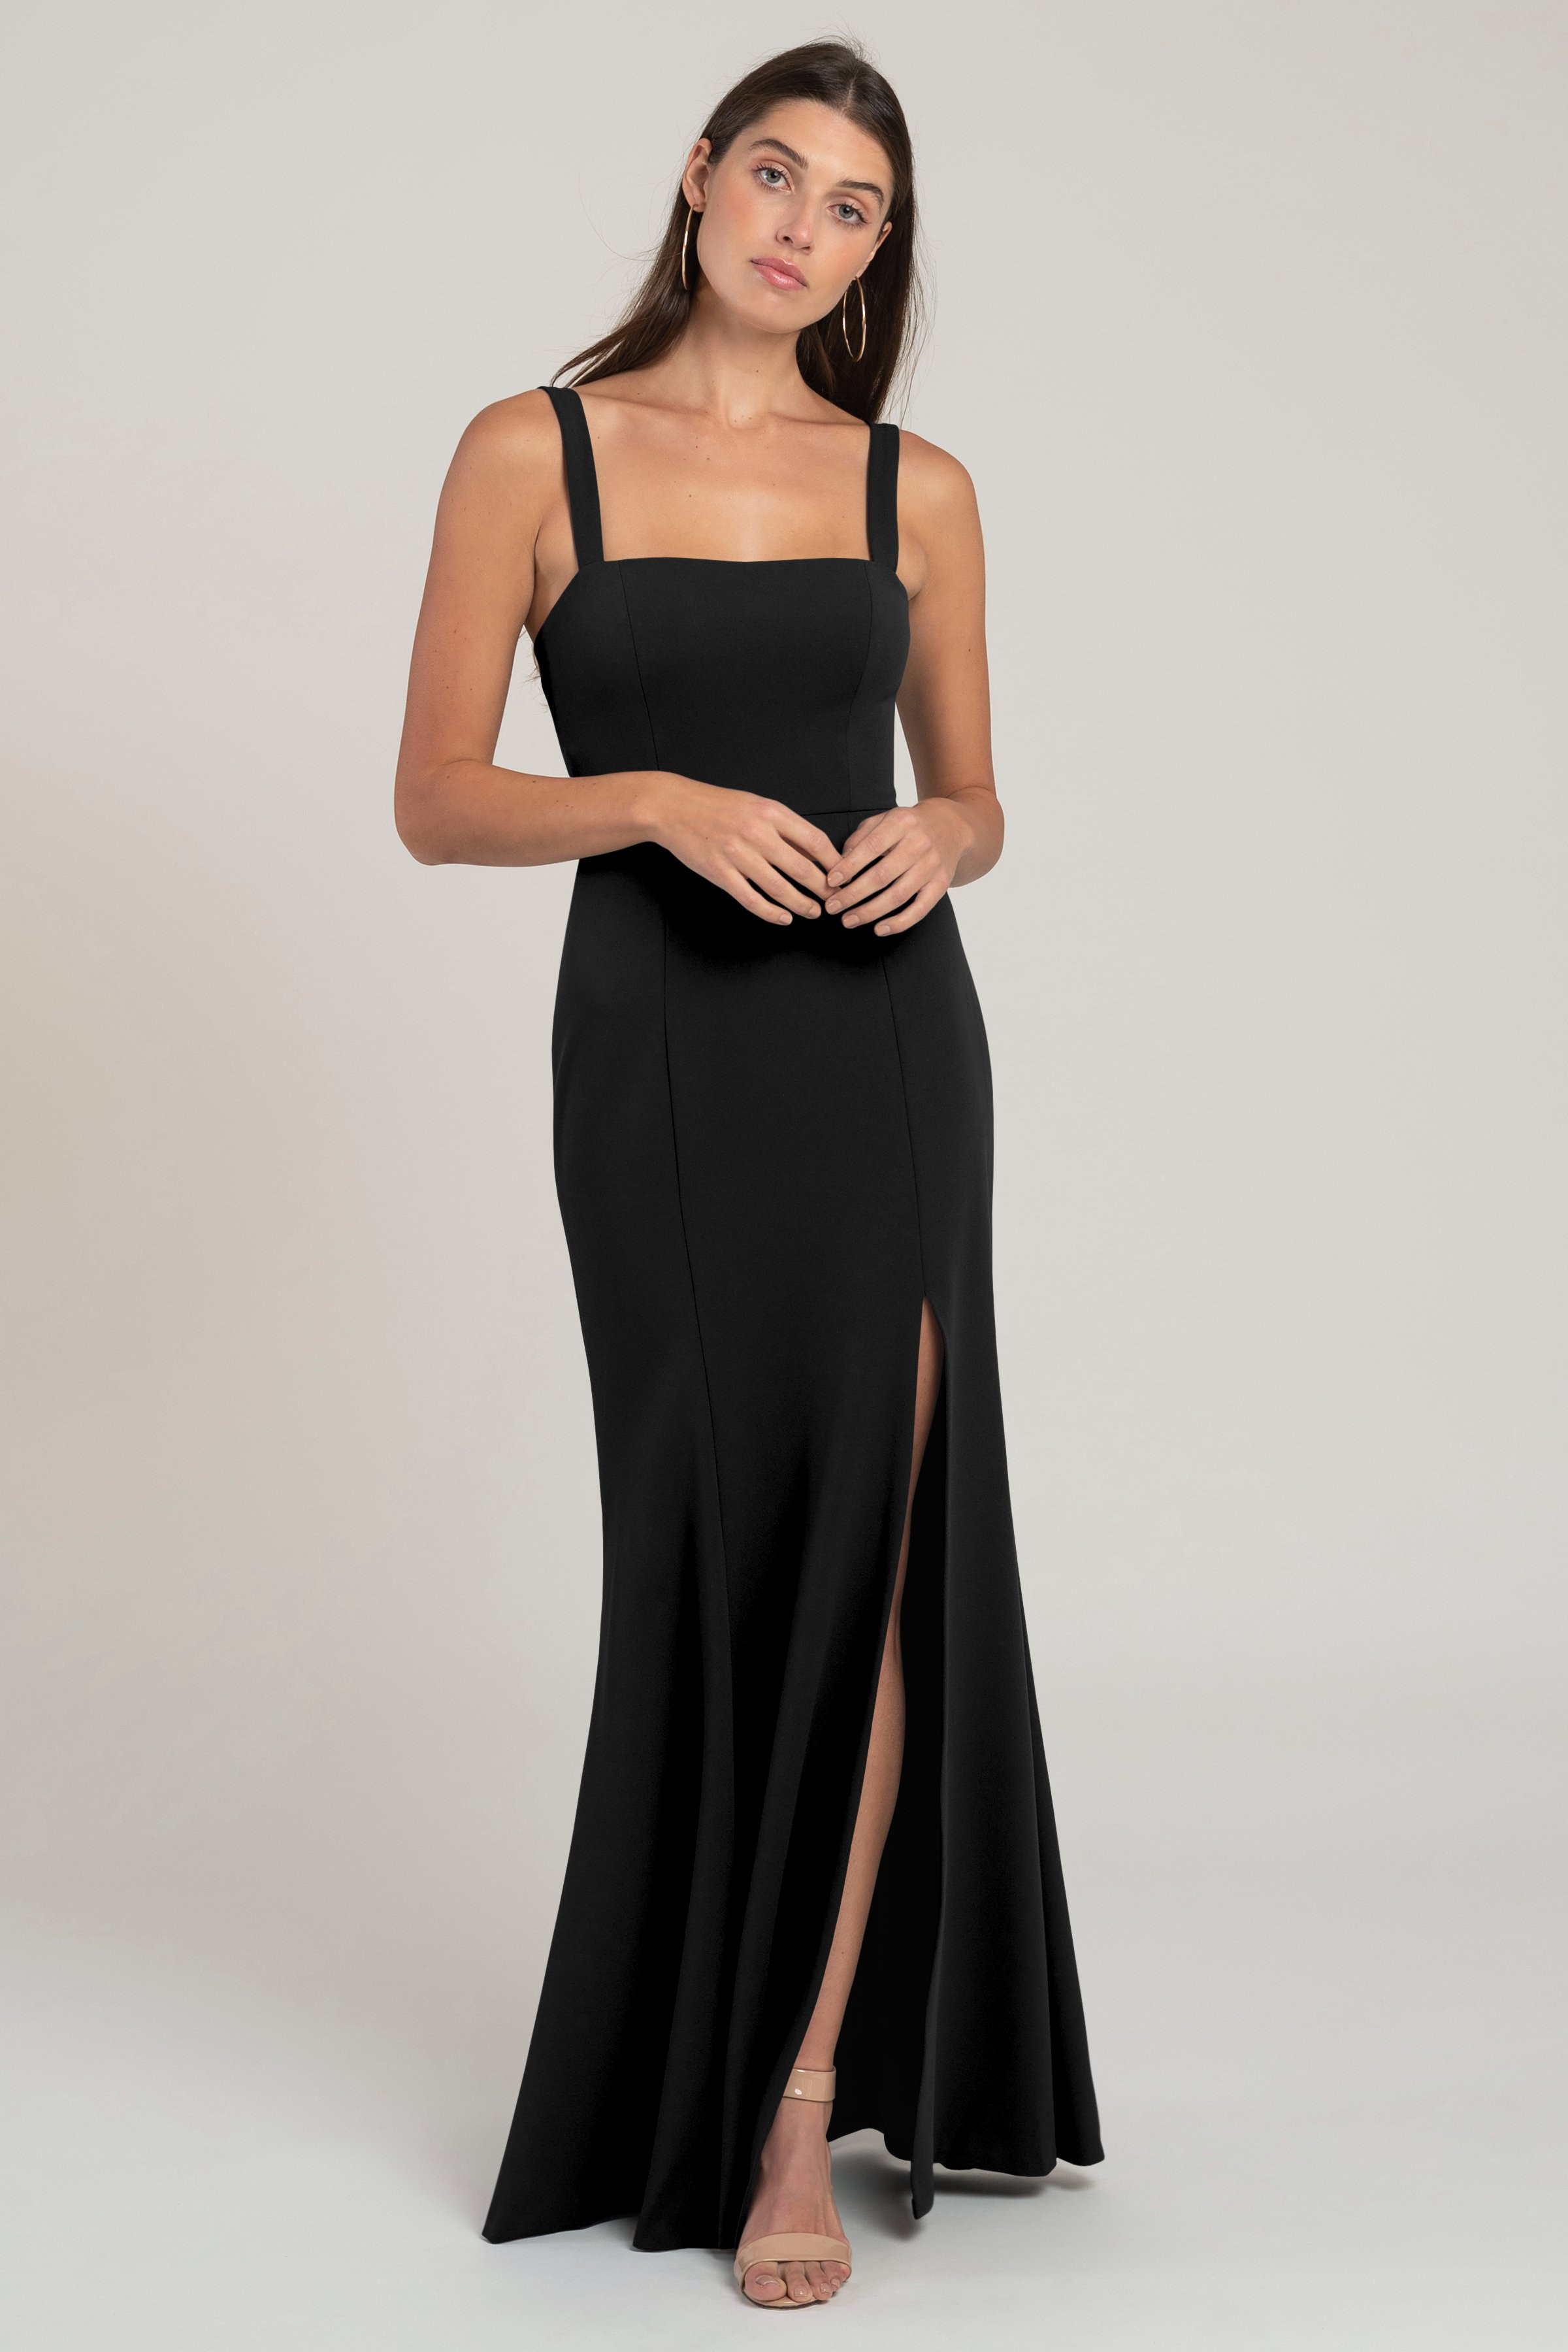 The Jenner square neck fit and flare knit crepe bridesmaid dress flatters your every curve. The wide set straps and side slit skirt give this style serious cool girl attitude.